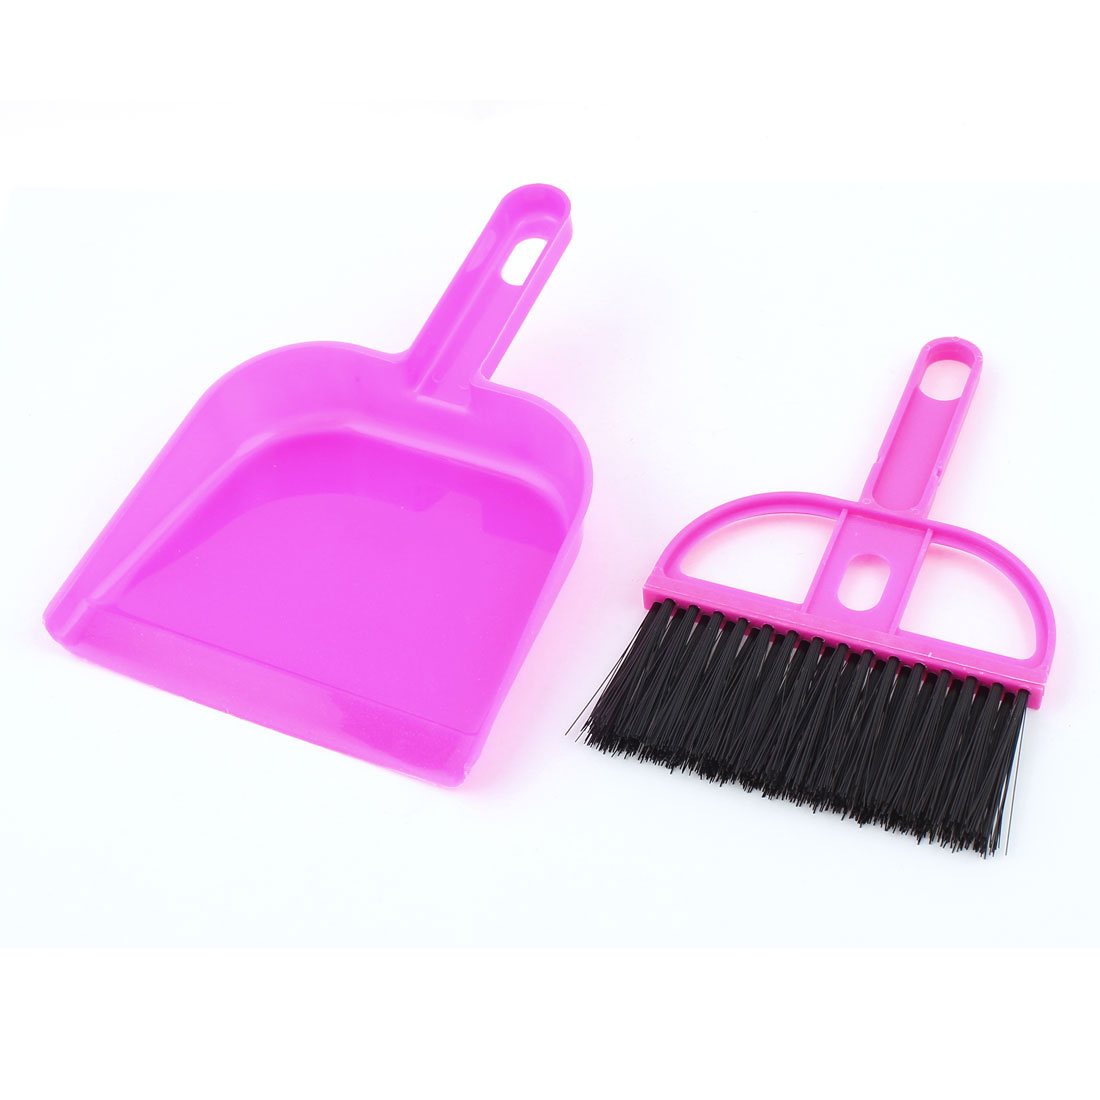 2 in 1 Computer Netbook Keyboard Desk Table Dustpan Broom Cleaner Brush Fuchsia